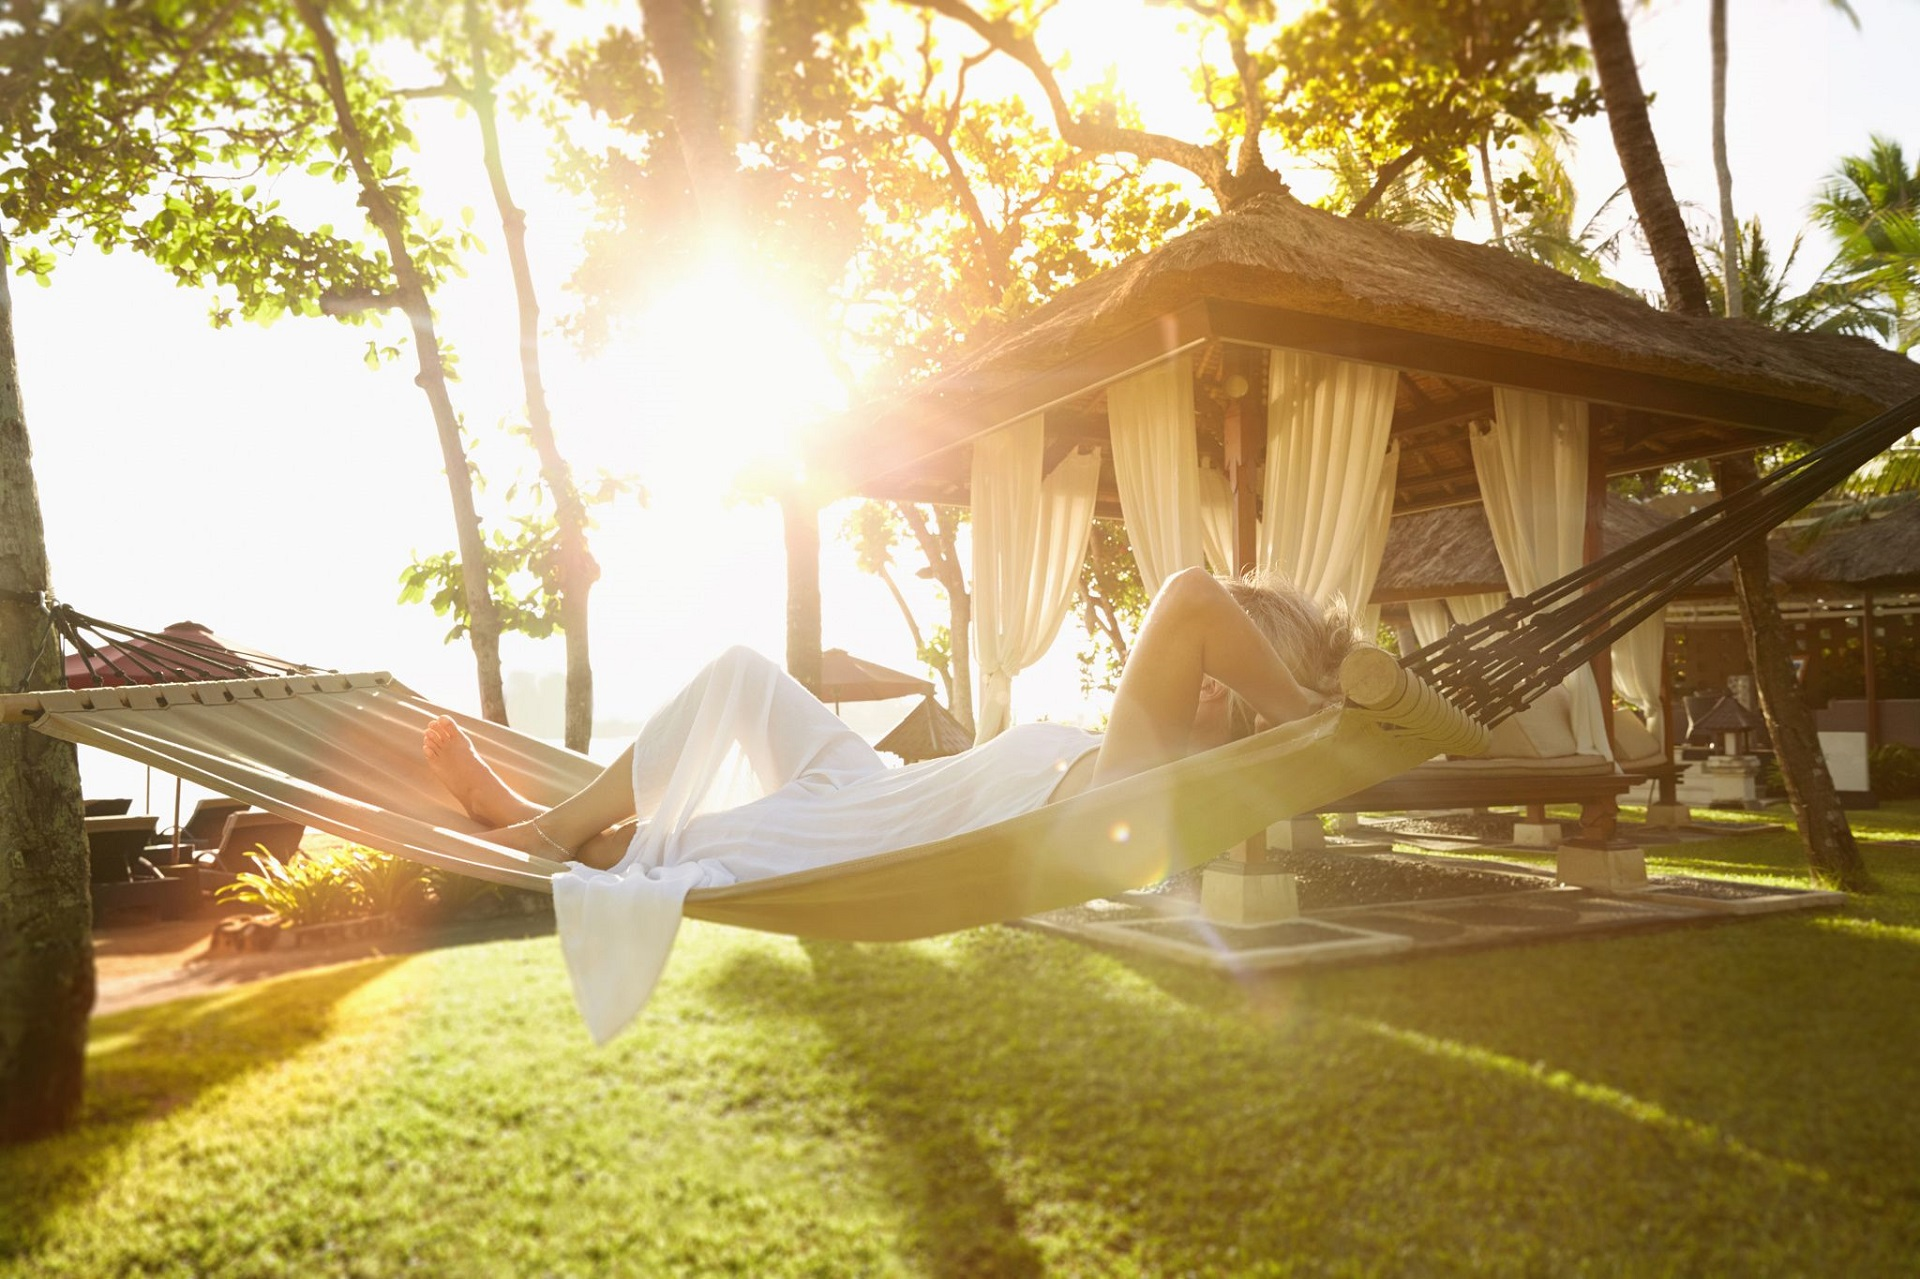 10 Best Ways to Relax after a Long Day